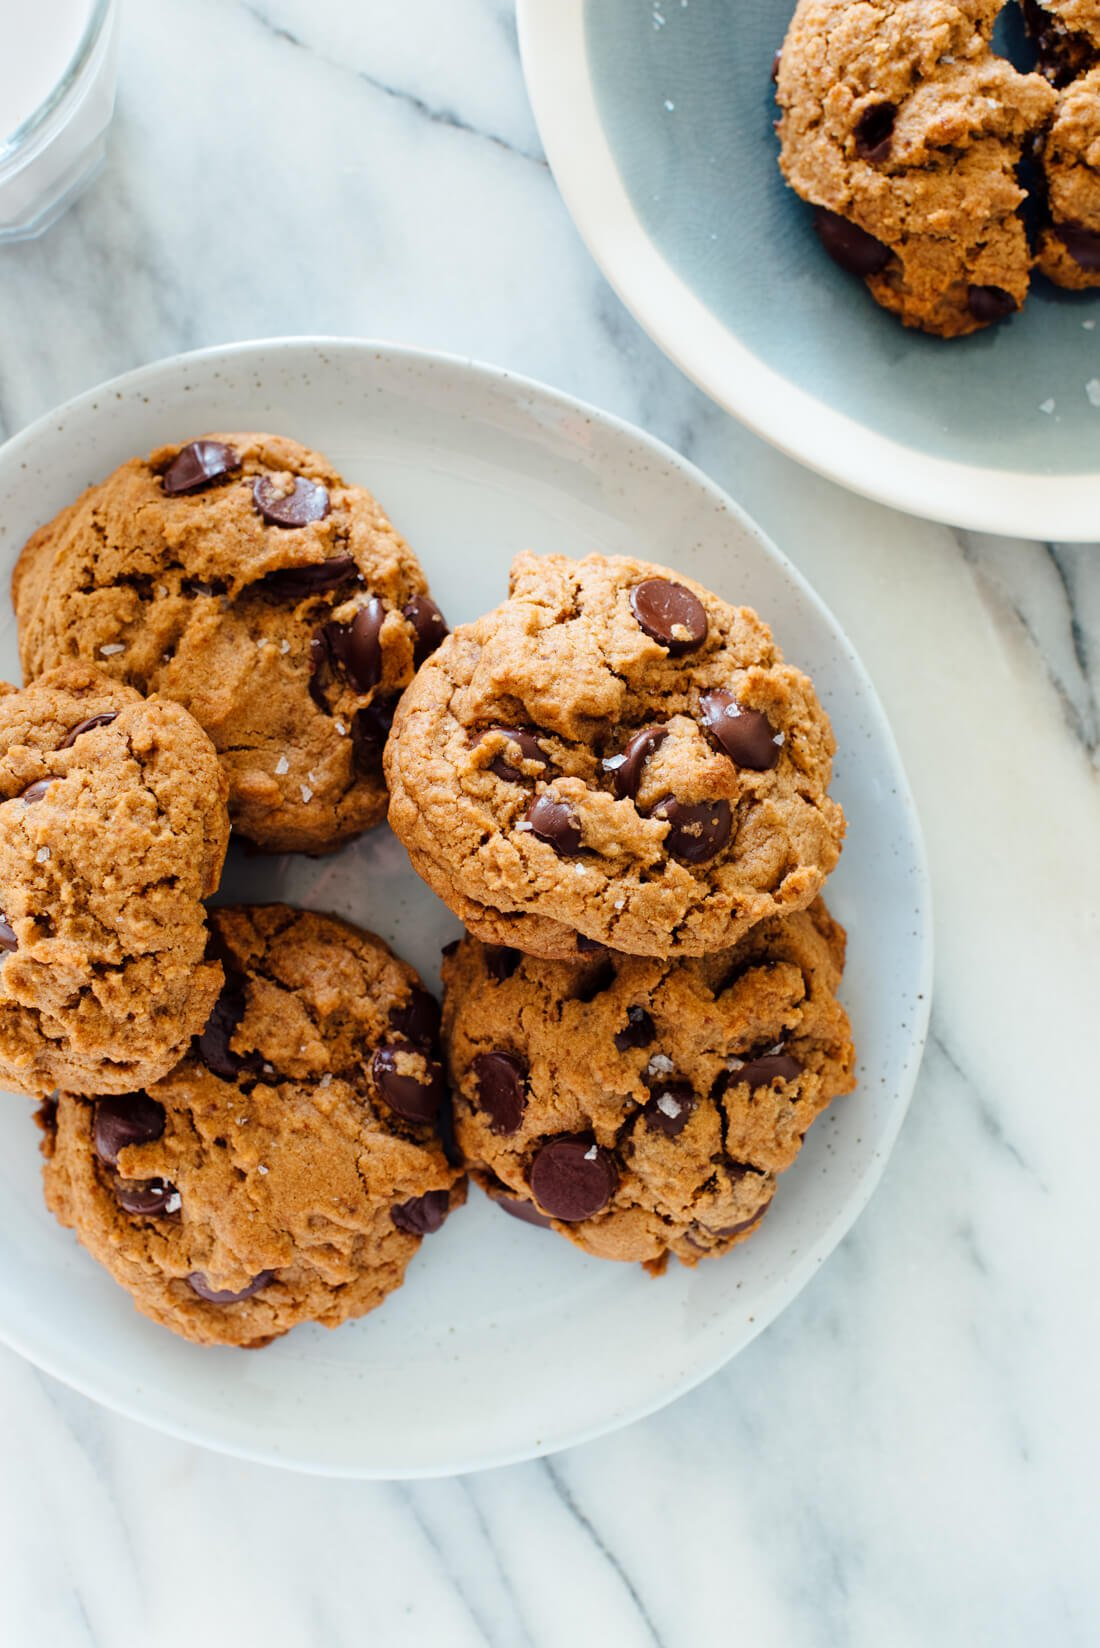 The best chocolate chip cookies recipe! These cookies don't require a mixer or an overnight rest, AND they just-so-happen to be vegan. #dairyfree #eggfree #cookierecipe #chocolate